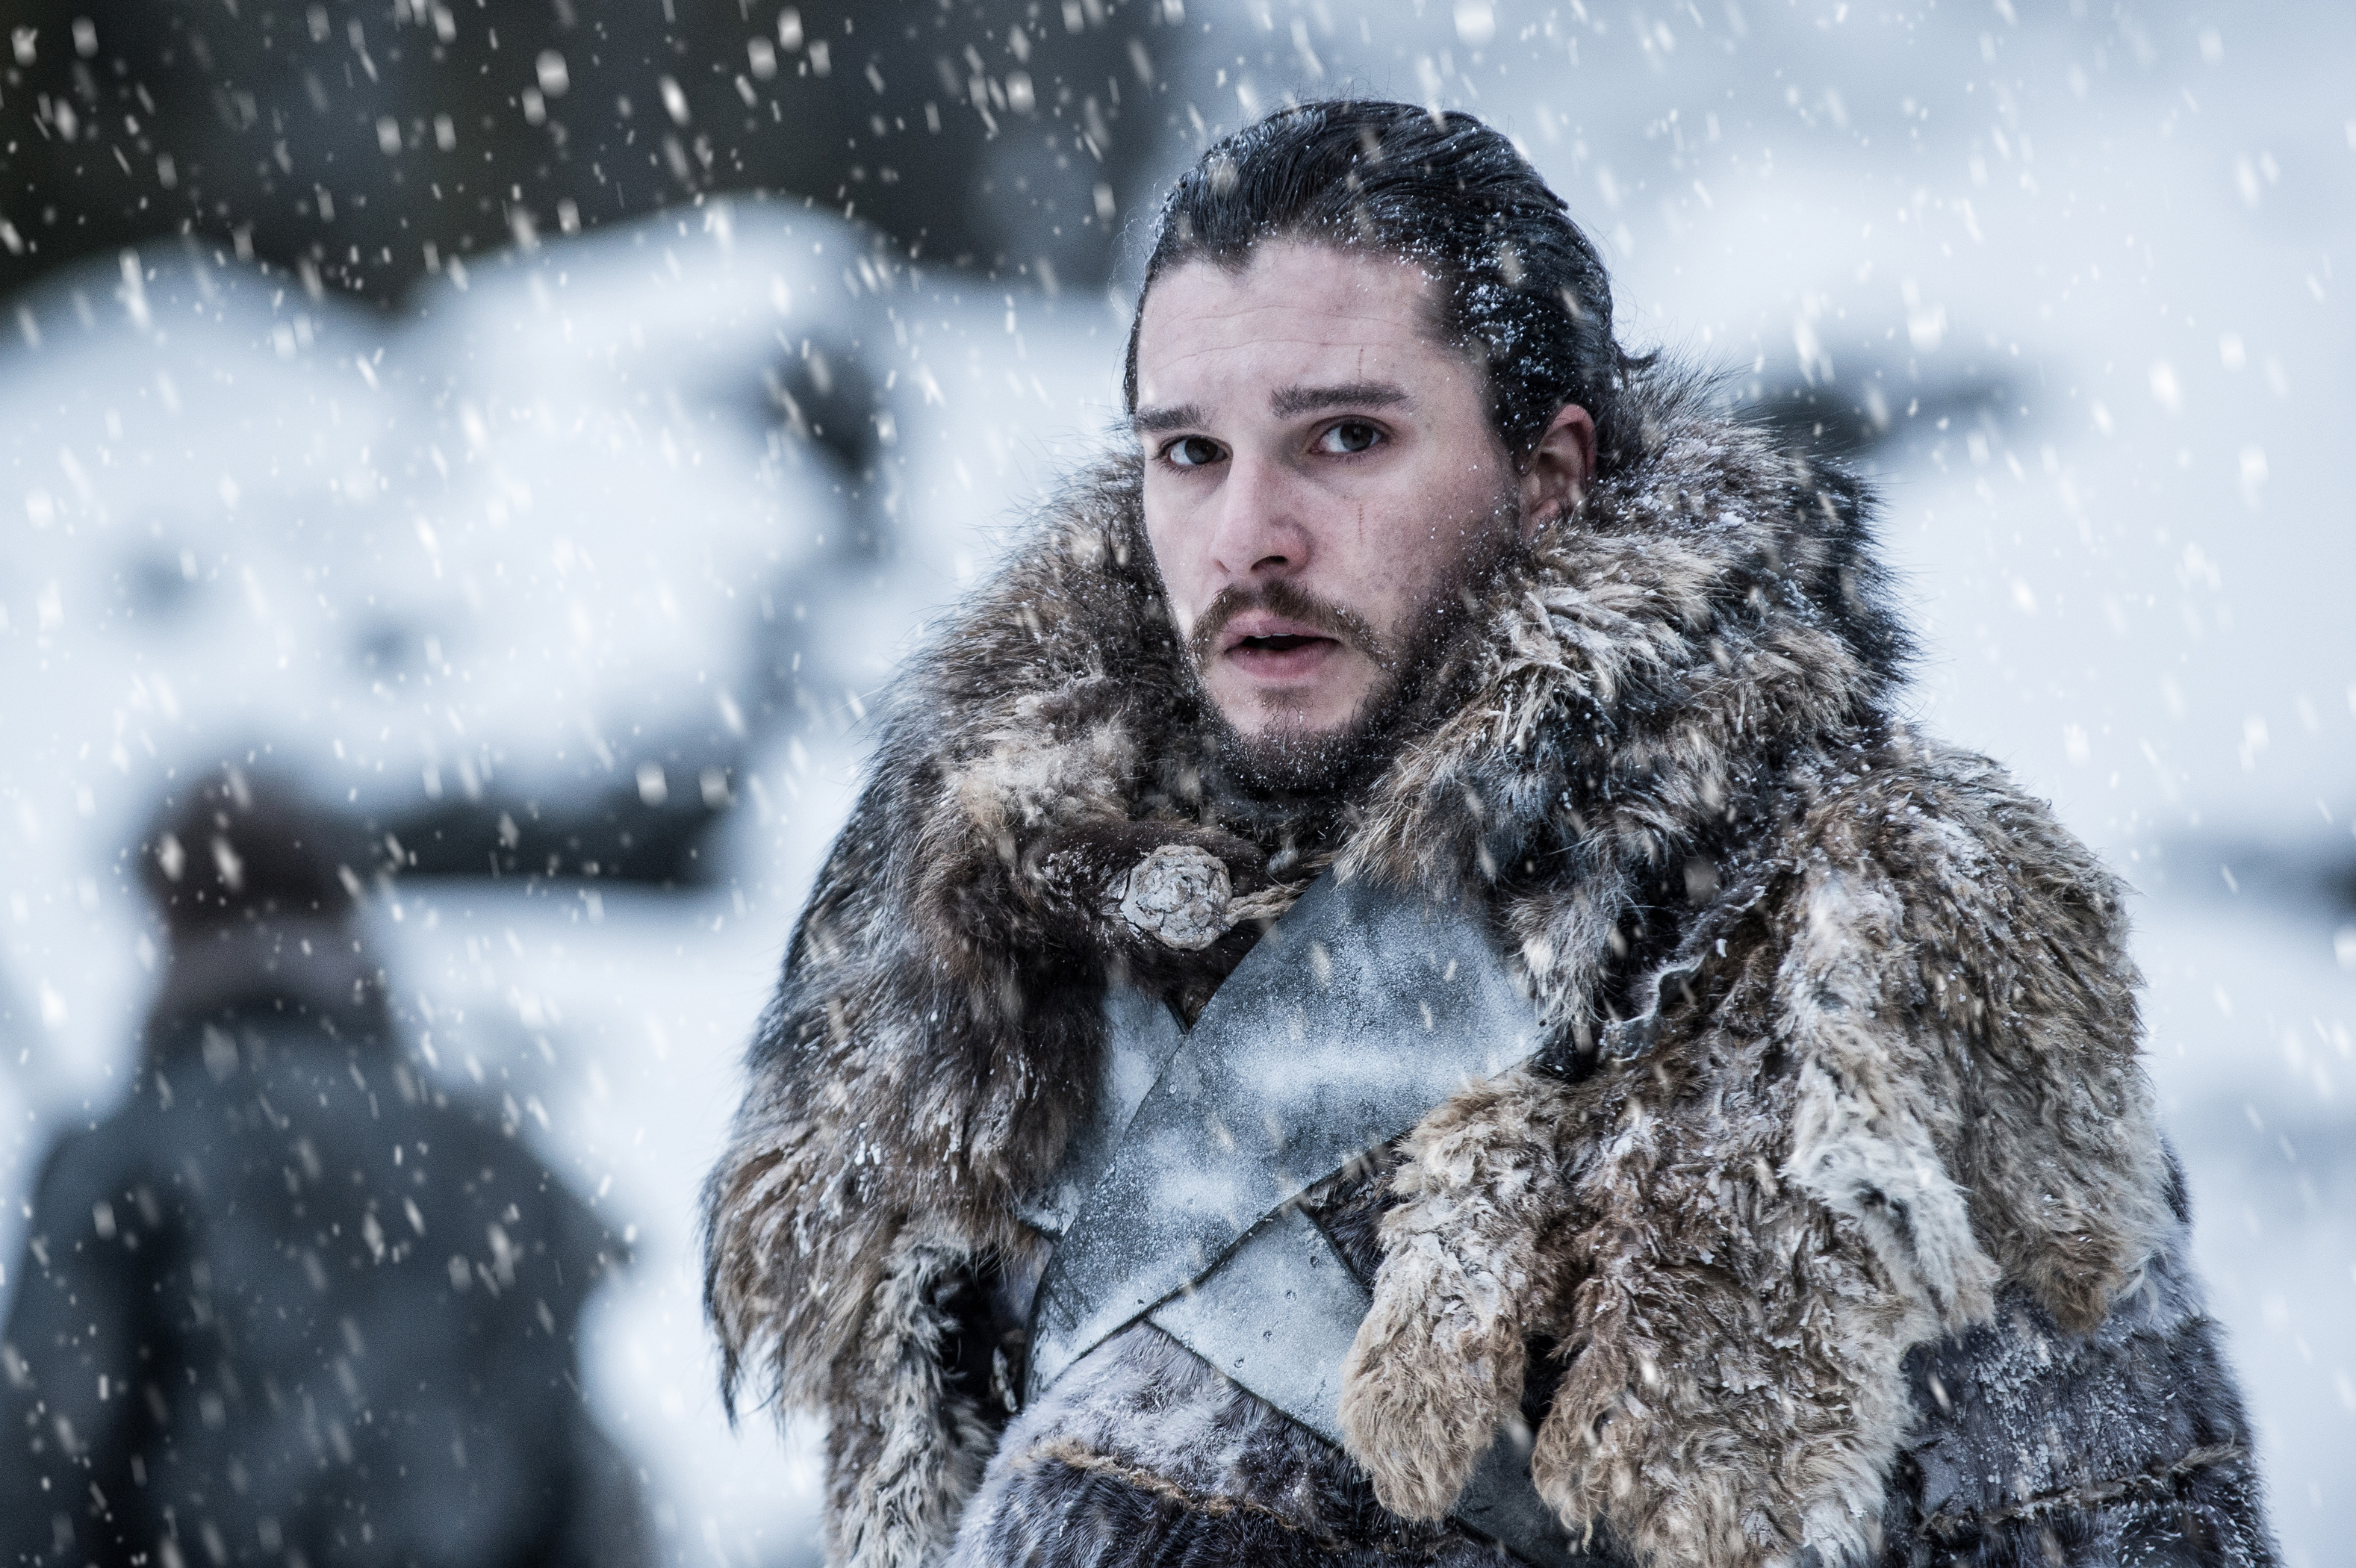 Better watch your back, Jon Snow, Emilia Clarke says the Iron Throne is only big enough for *one* person